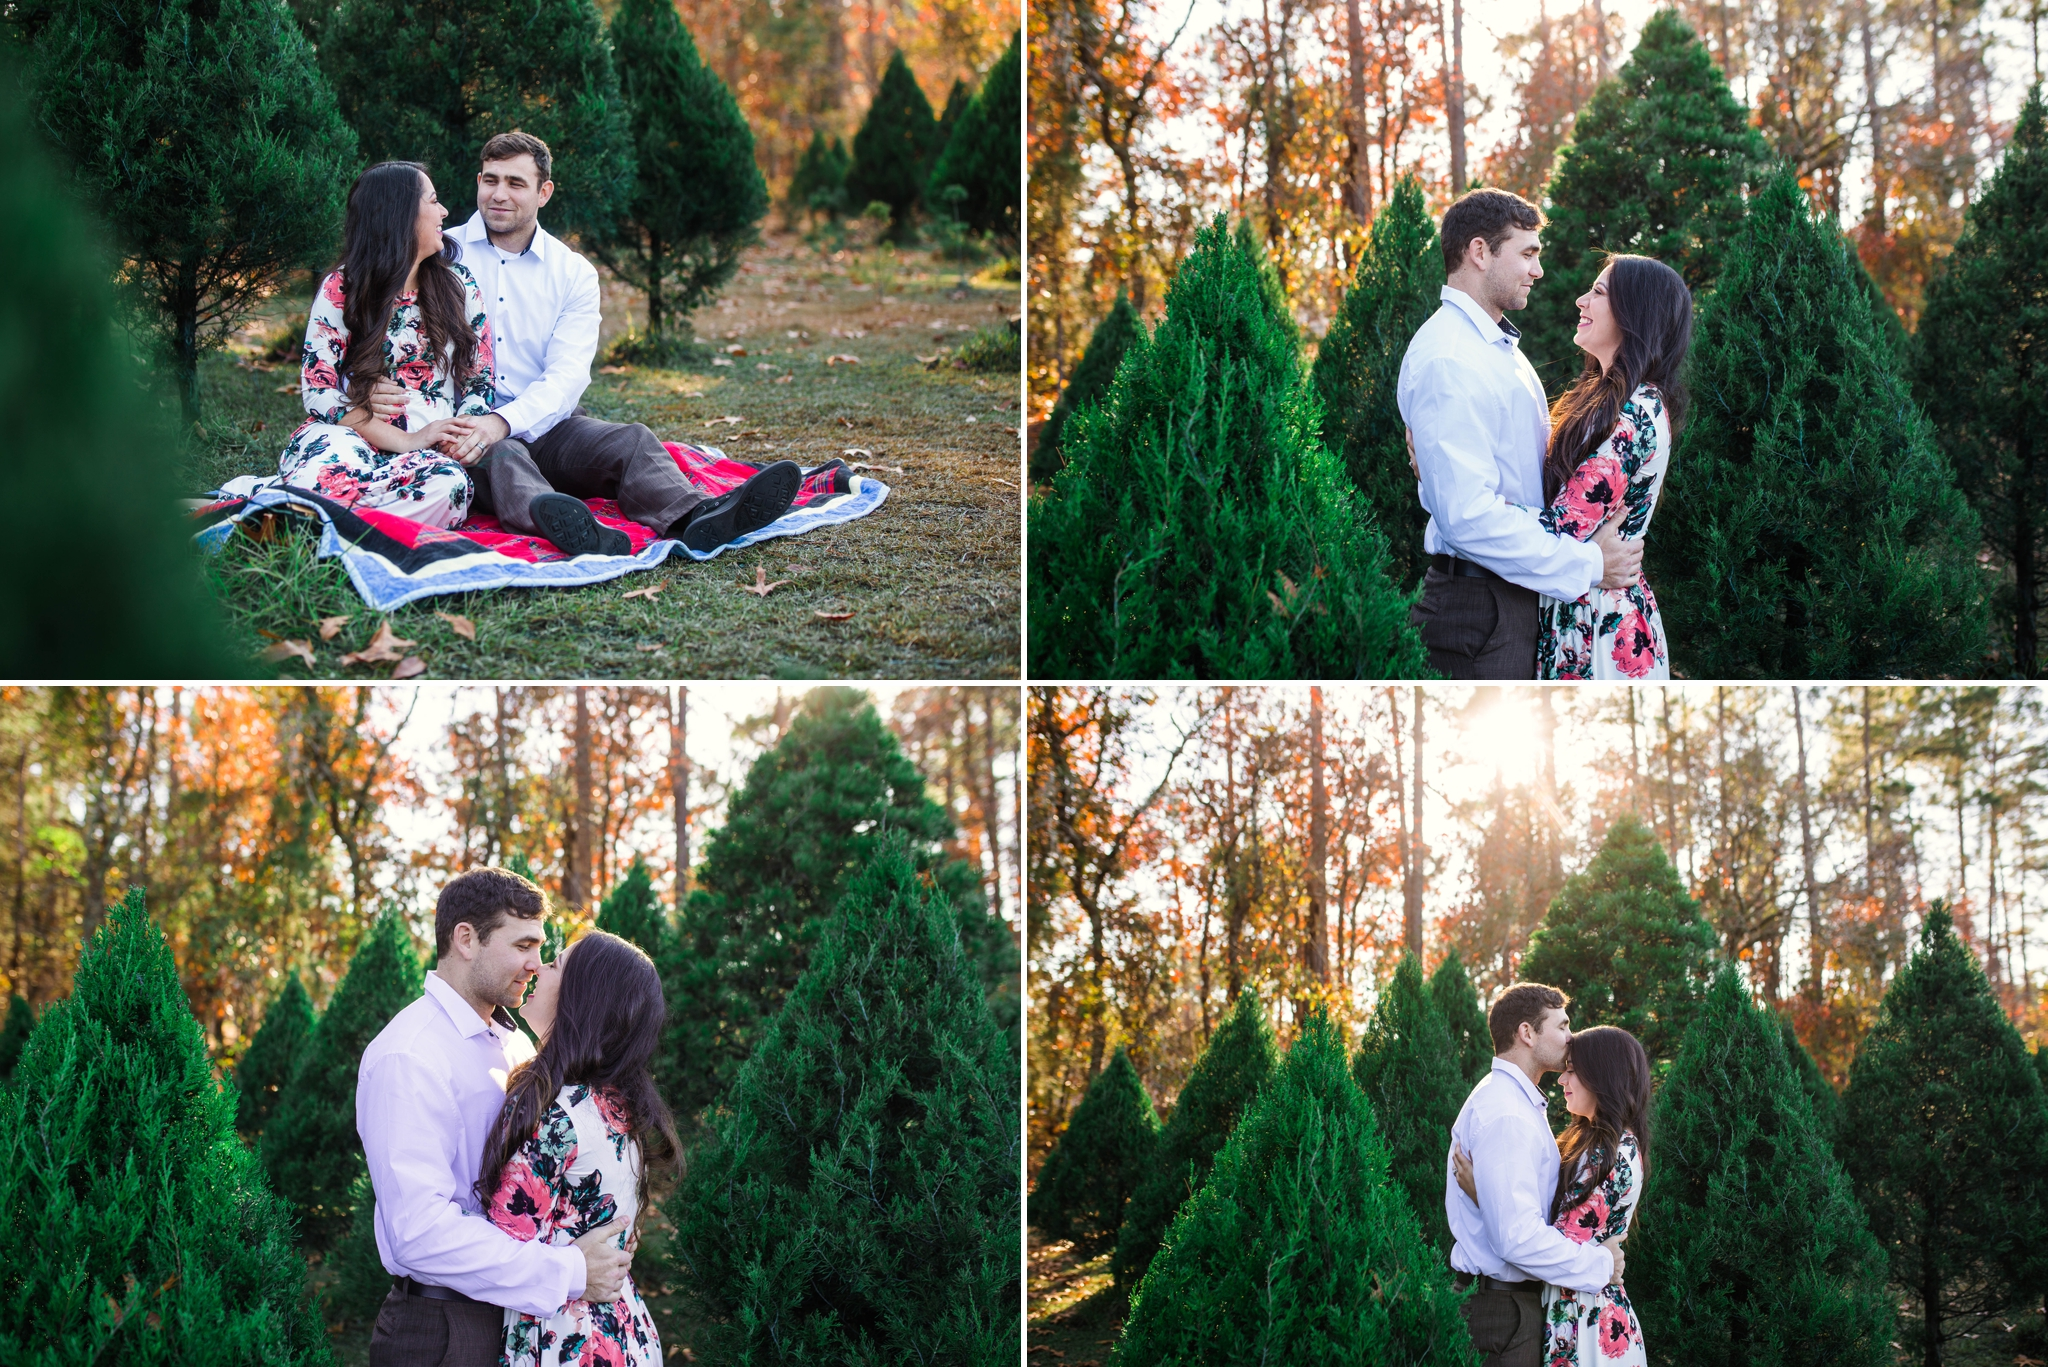 The Spencer S Couples Photography In Fayetteville North Carolina Elopement Engagement Family Photographers In Oahu Hawaii Johanna Dye Photography